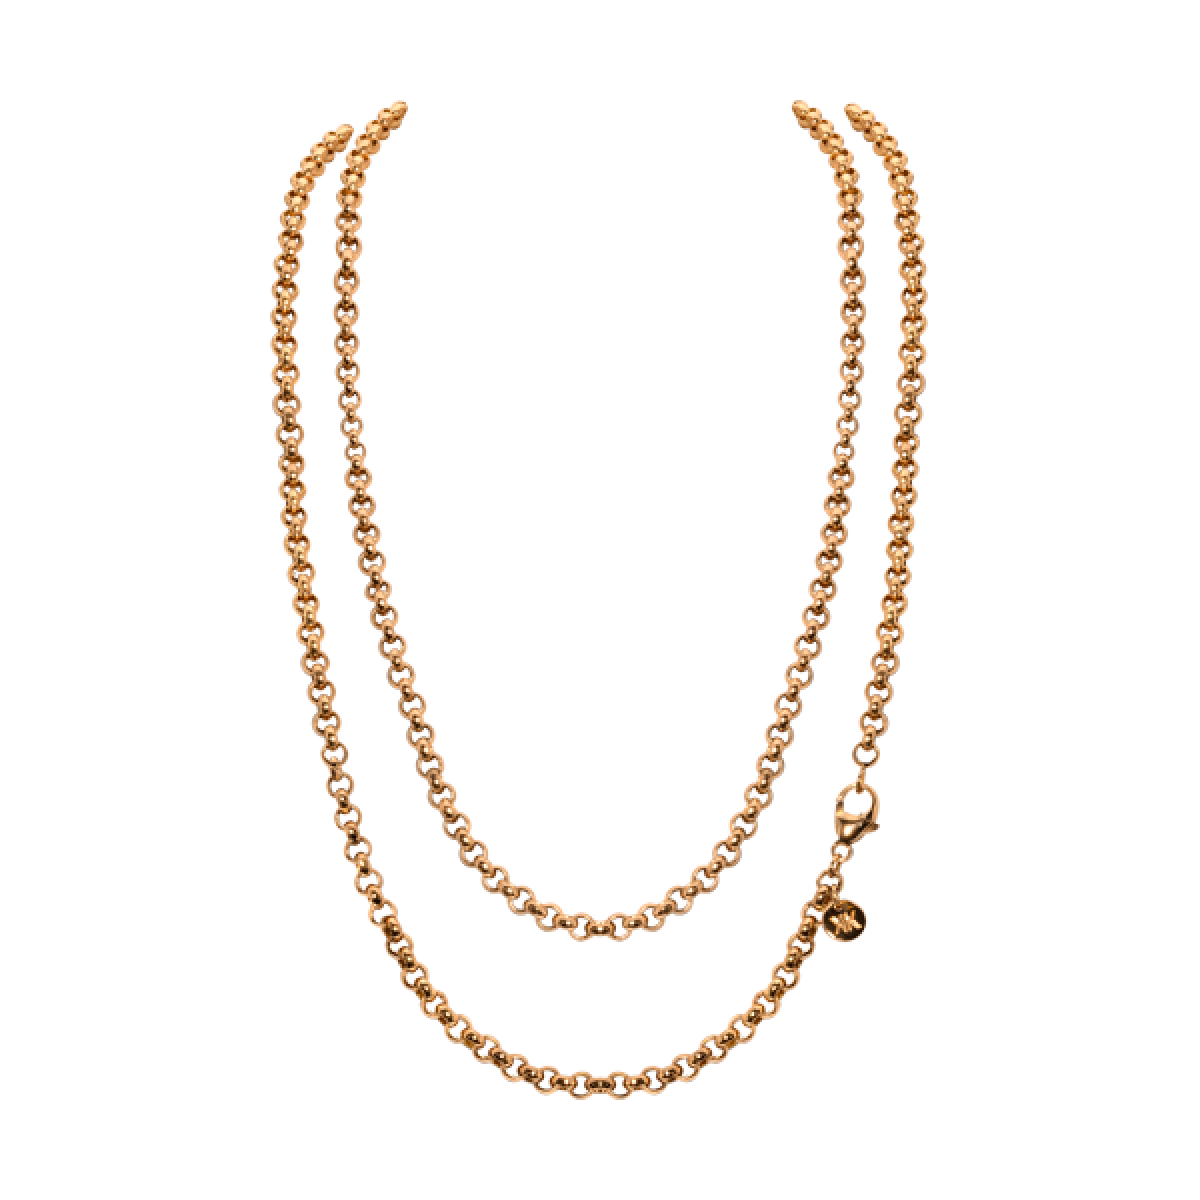 Jewellery Chain Png Pic Png Mart Chains Jewelry Jewelry Nikki Lissoni Necklace